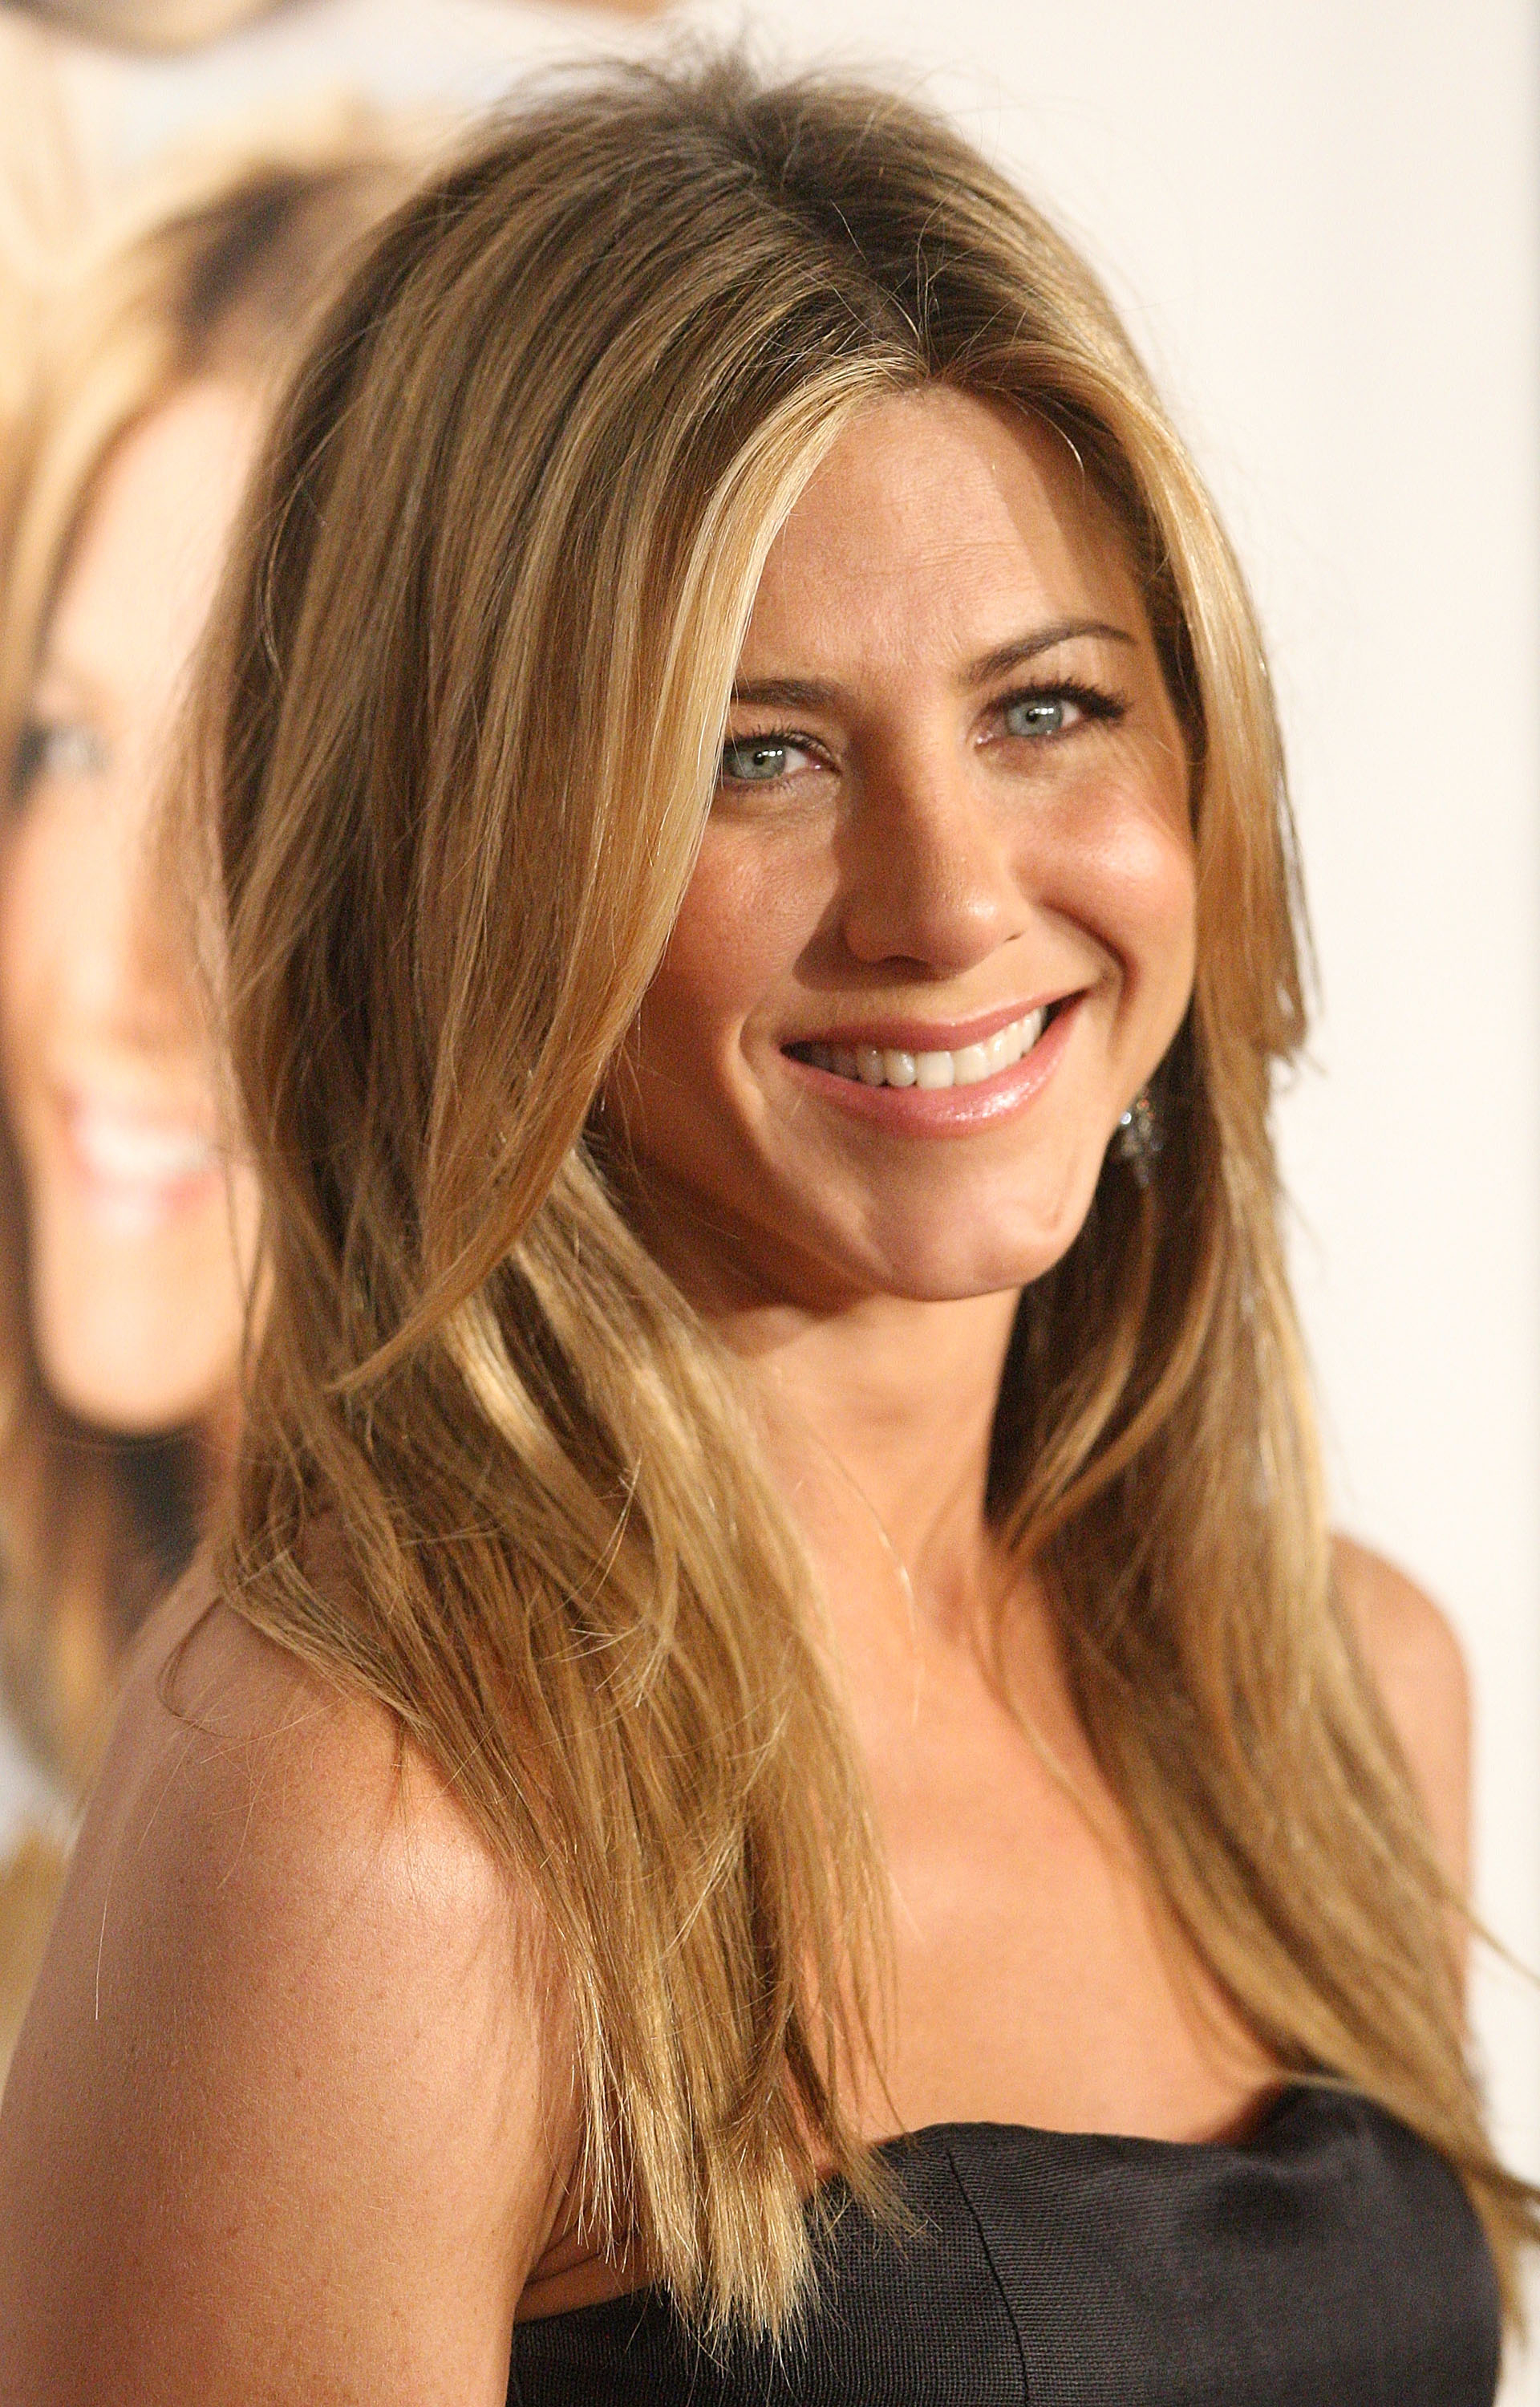 """WESTWOOD, CA - DECEMBER 11:  Actress Jennifer Aniston arrives at the Los Angeles premiere of """"Marley & Me"""" on December 11, 2008 in Los Angeles, California.  (Photo by Jason Merritt/FilmMagic)"""